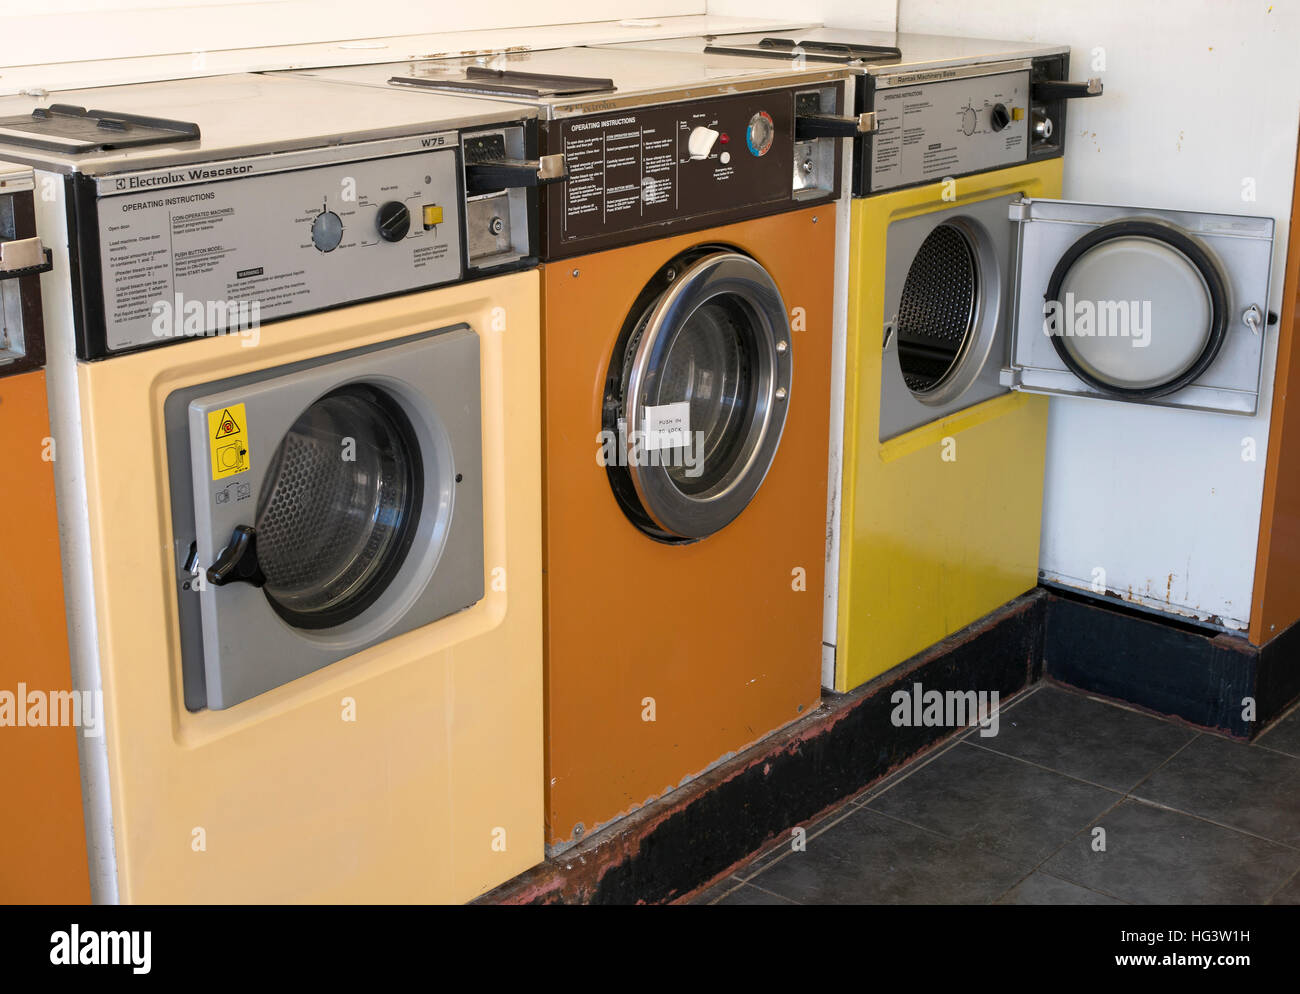 Colourful washing machines in a laundrette in Pool Cornwall, England UK. - Stock Image